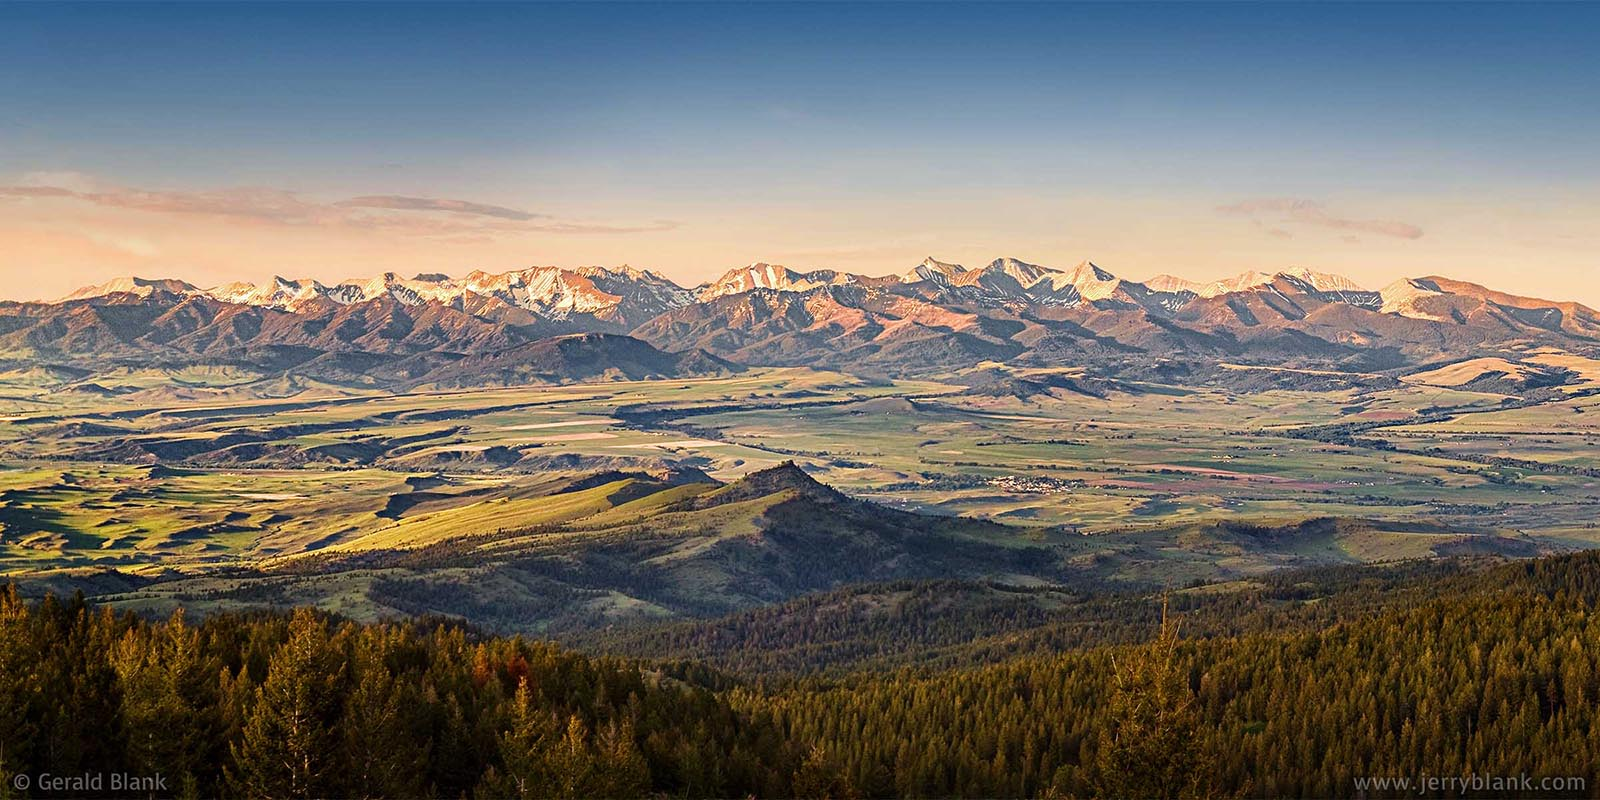 #07945 - Panoramic view of the Crazy Mountains in Montana, captured shortly before sunset in midsummer - photo by Jerry Blank